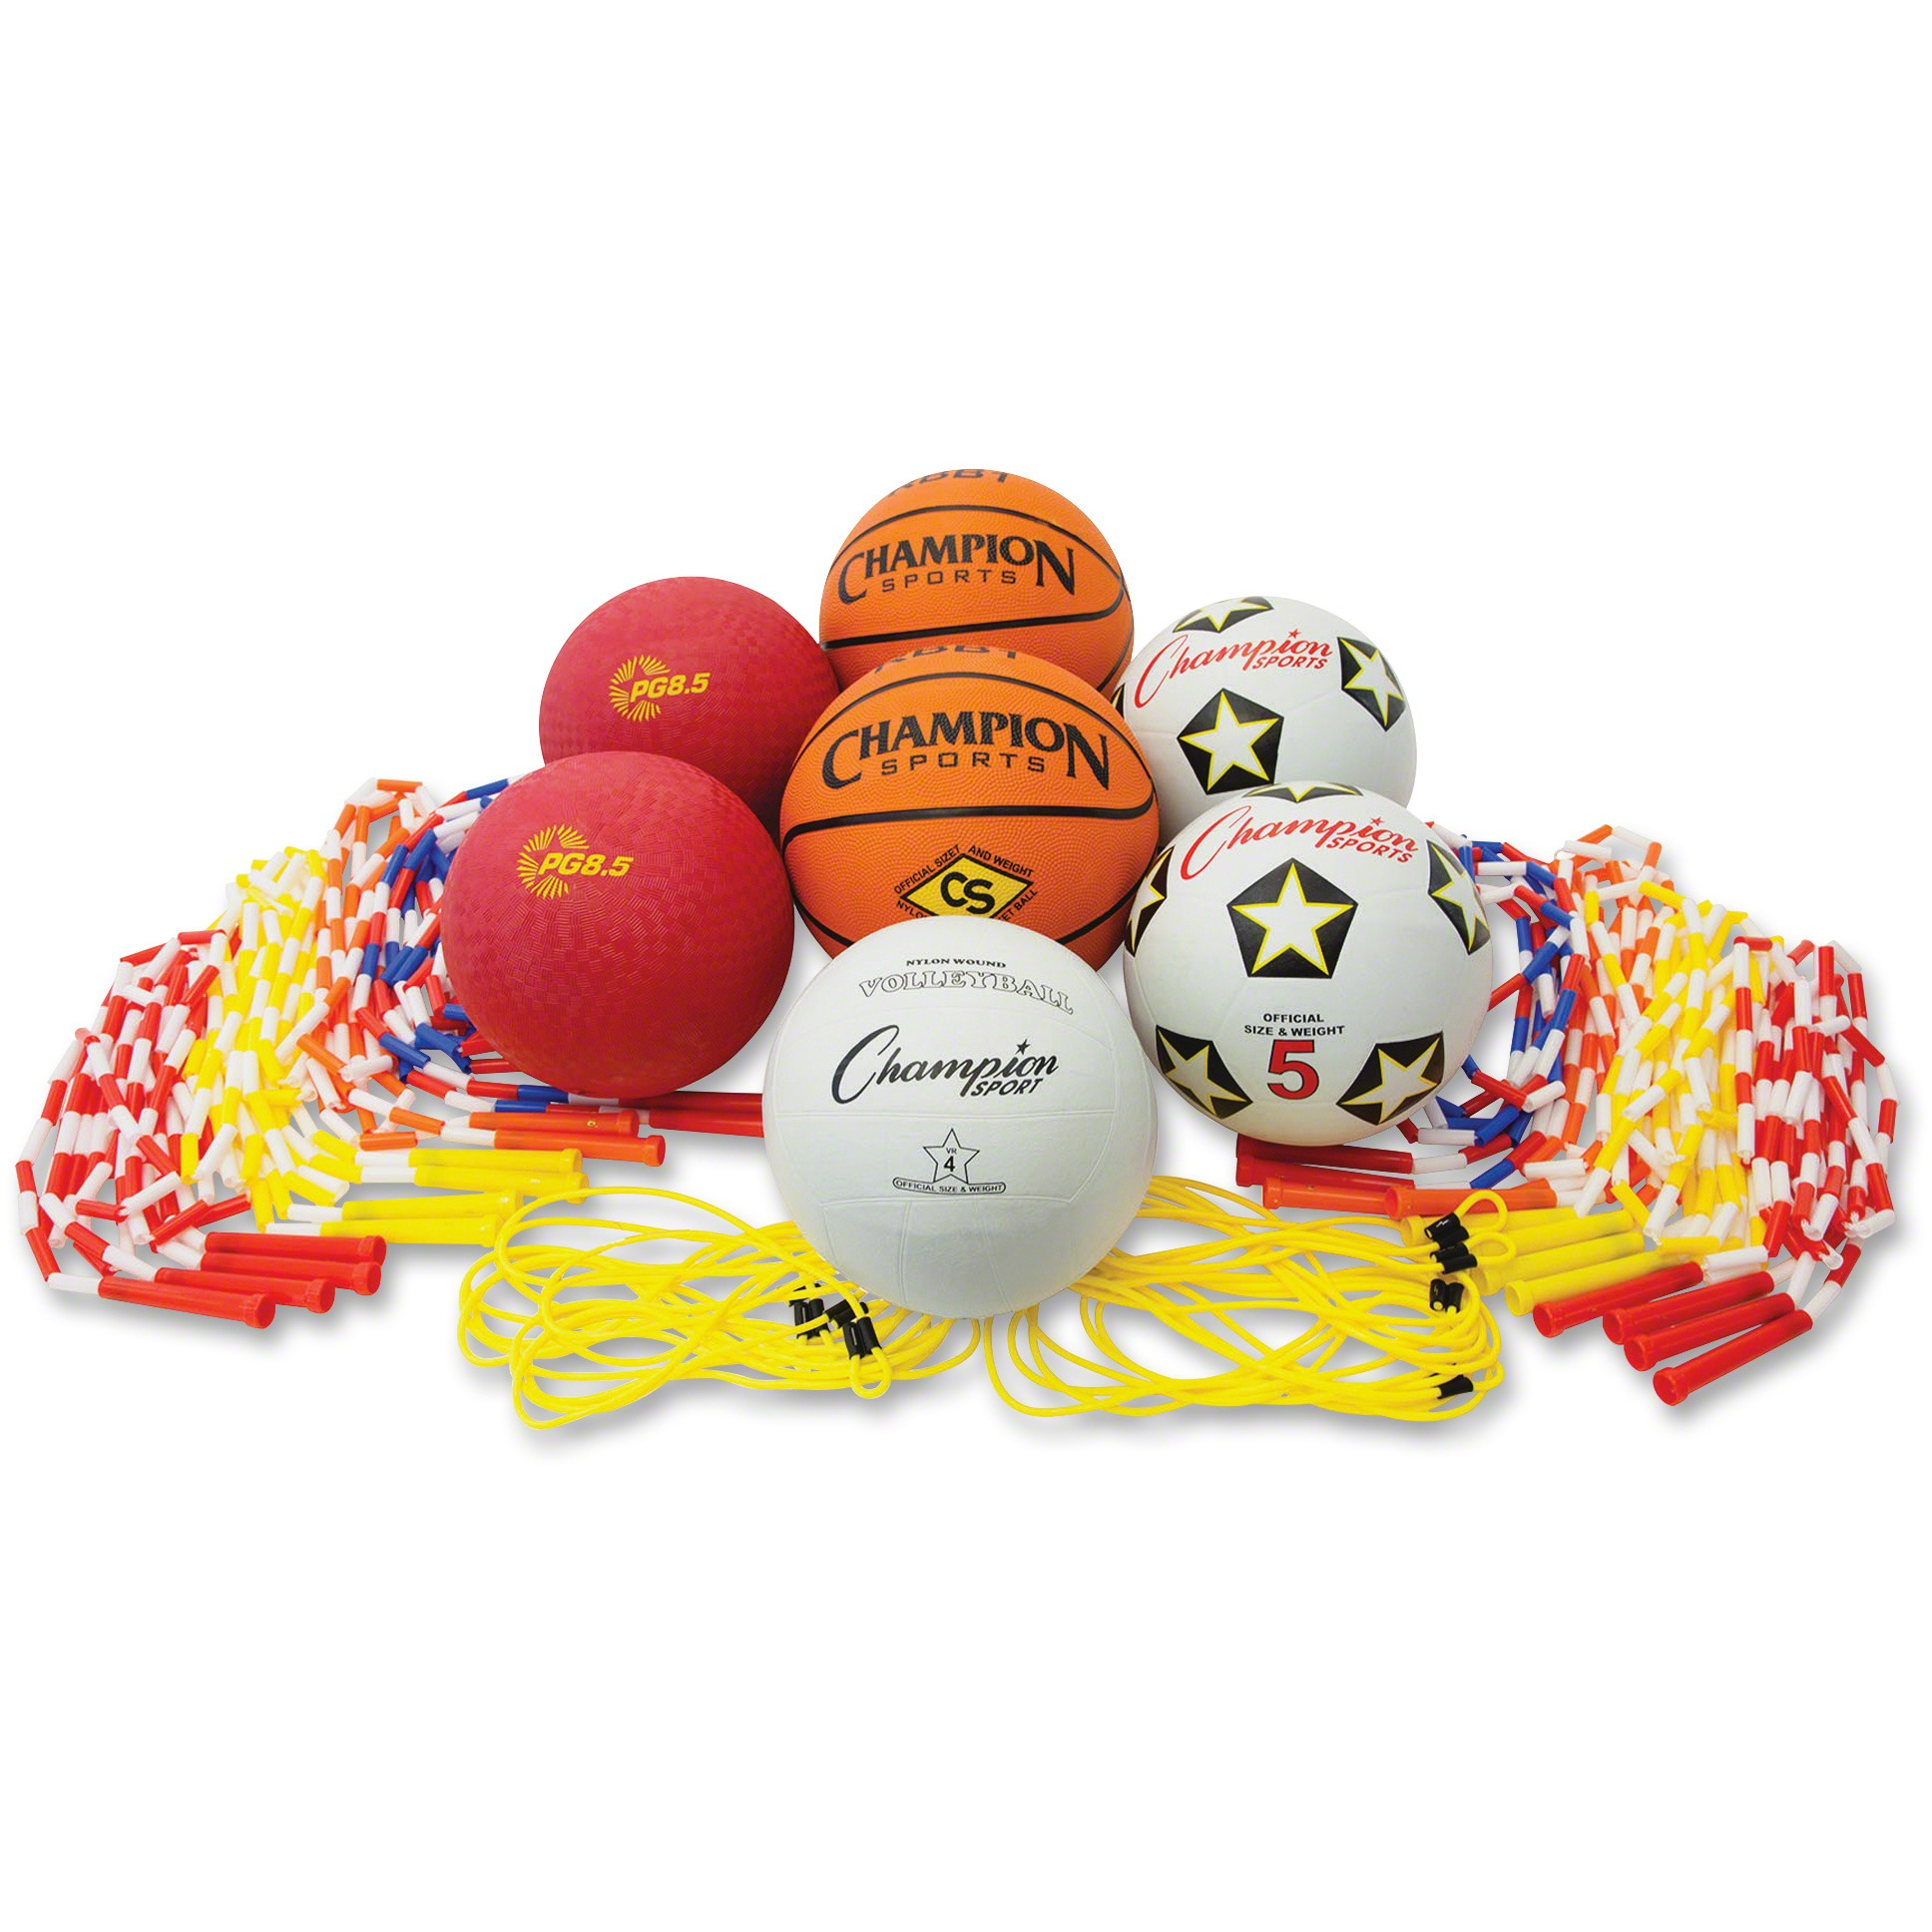 Champion Sport, CSIUPGSET2, s Physical Education Kit, 1, Assorted